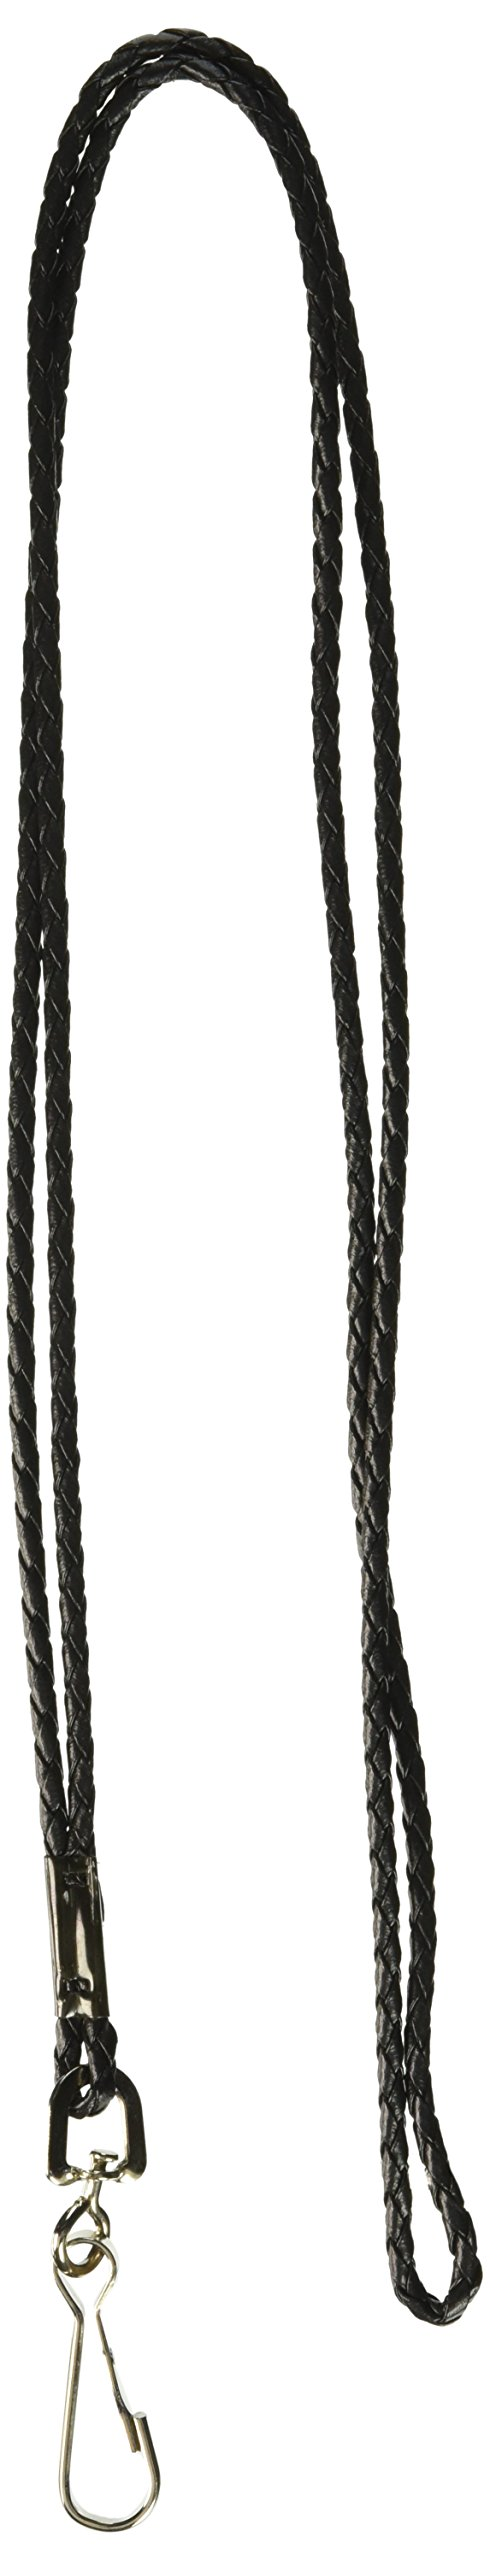 OmniPet Leather Brothers Lanyard Dog Whistles, 24-Inch by OmniPet